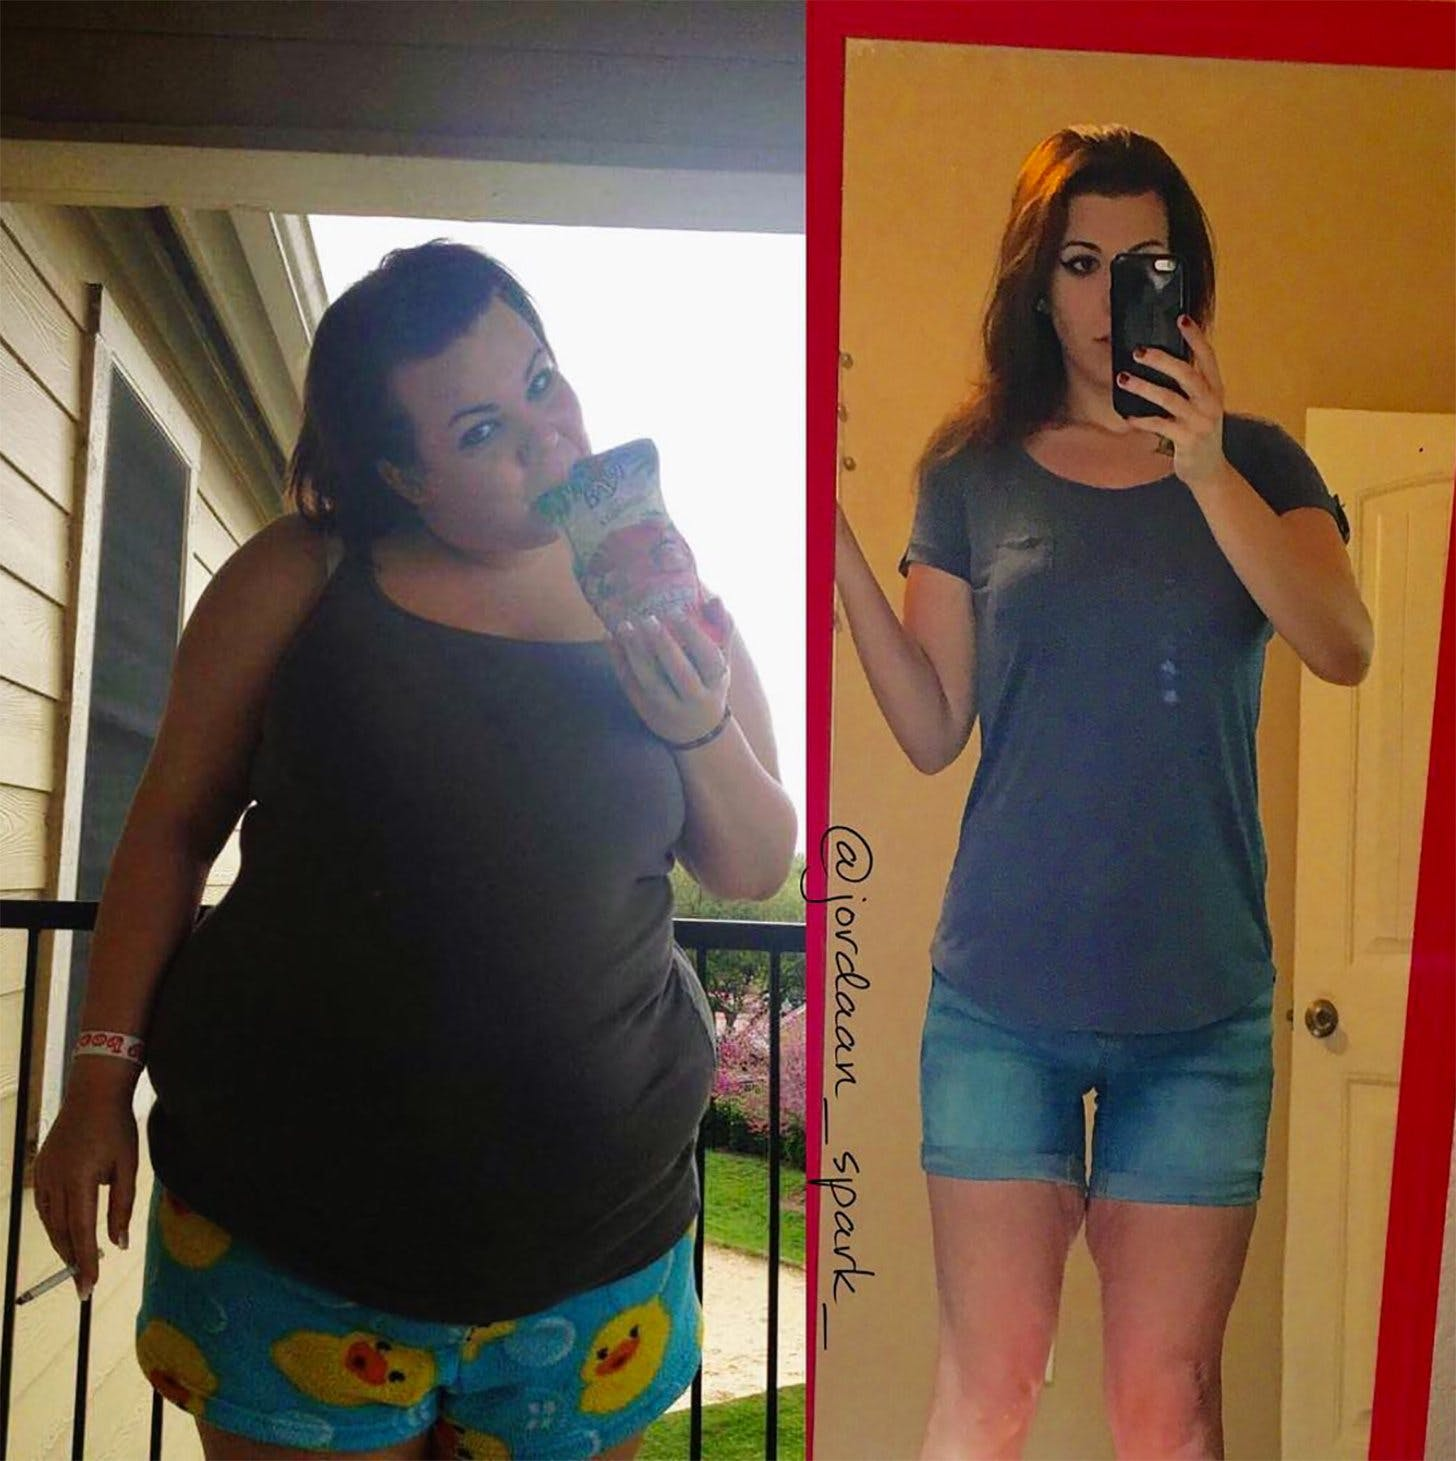 Impressive 160-Pound Weight Loss on Low Carb